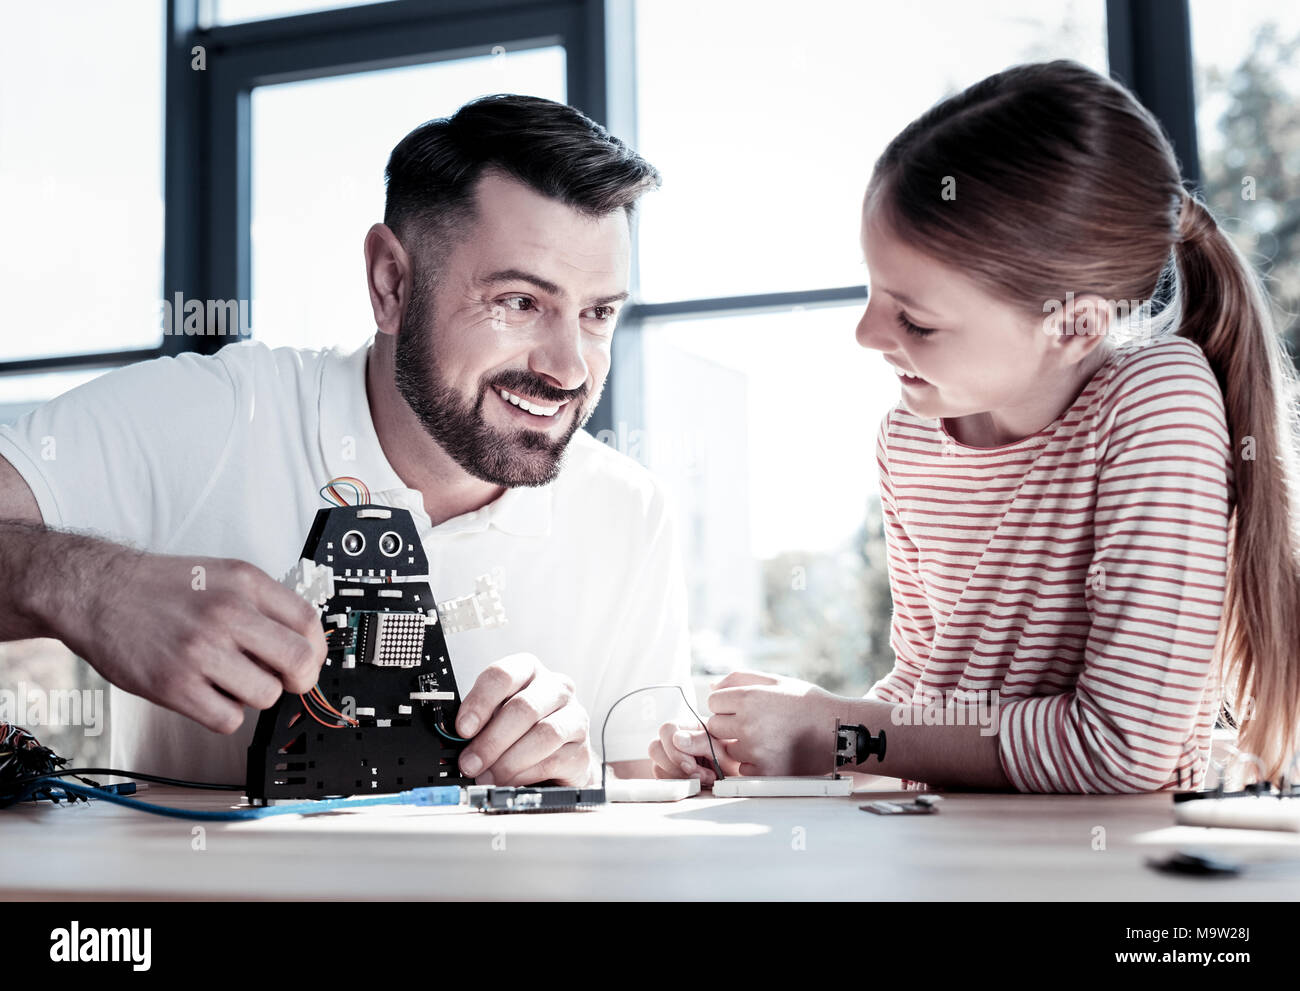 Adorable father and daughter designing robotic machine together - Stock Image